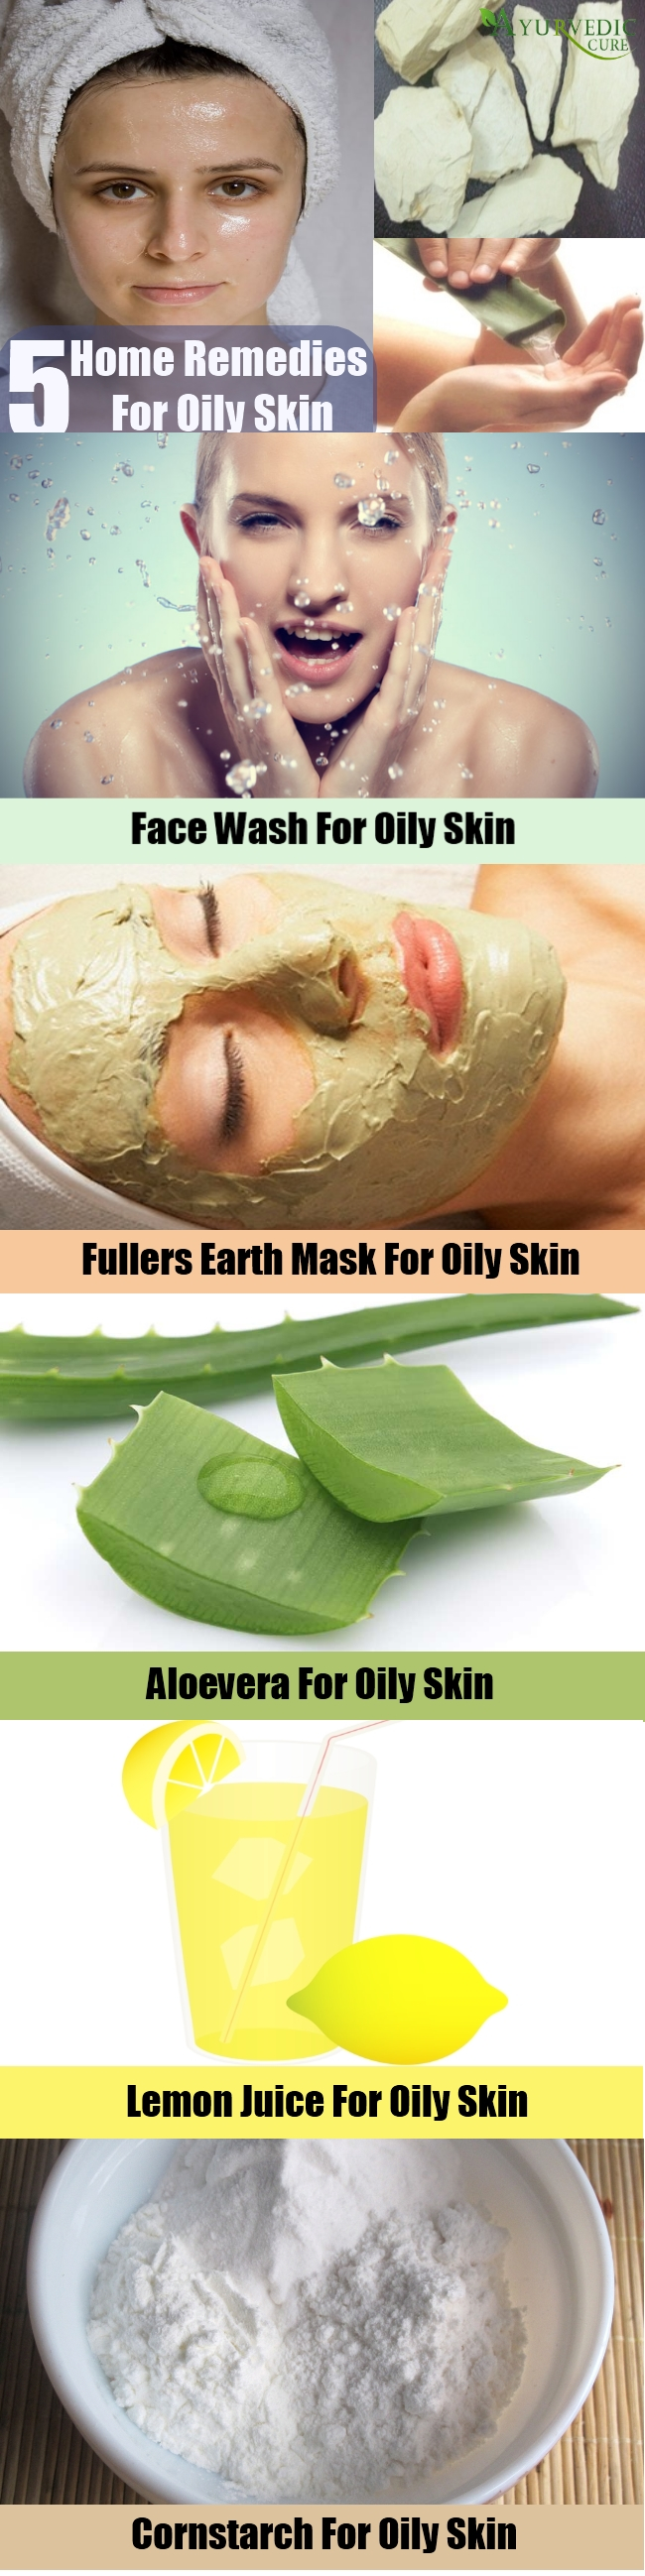 5 Easy Home Remedies For Oily Skin